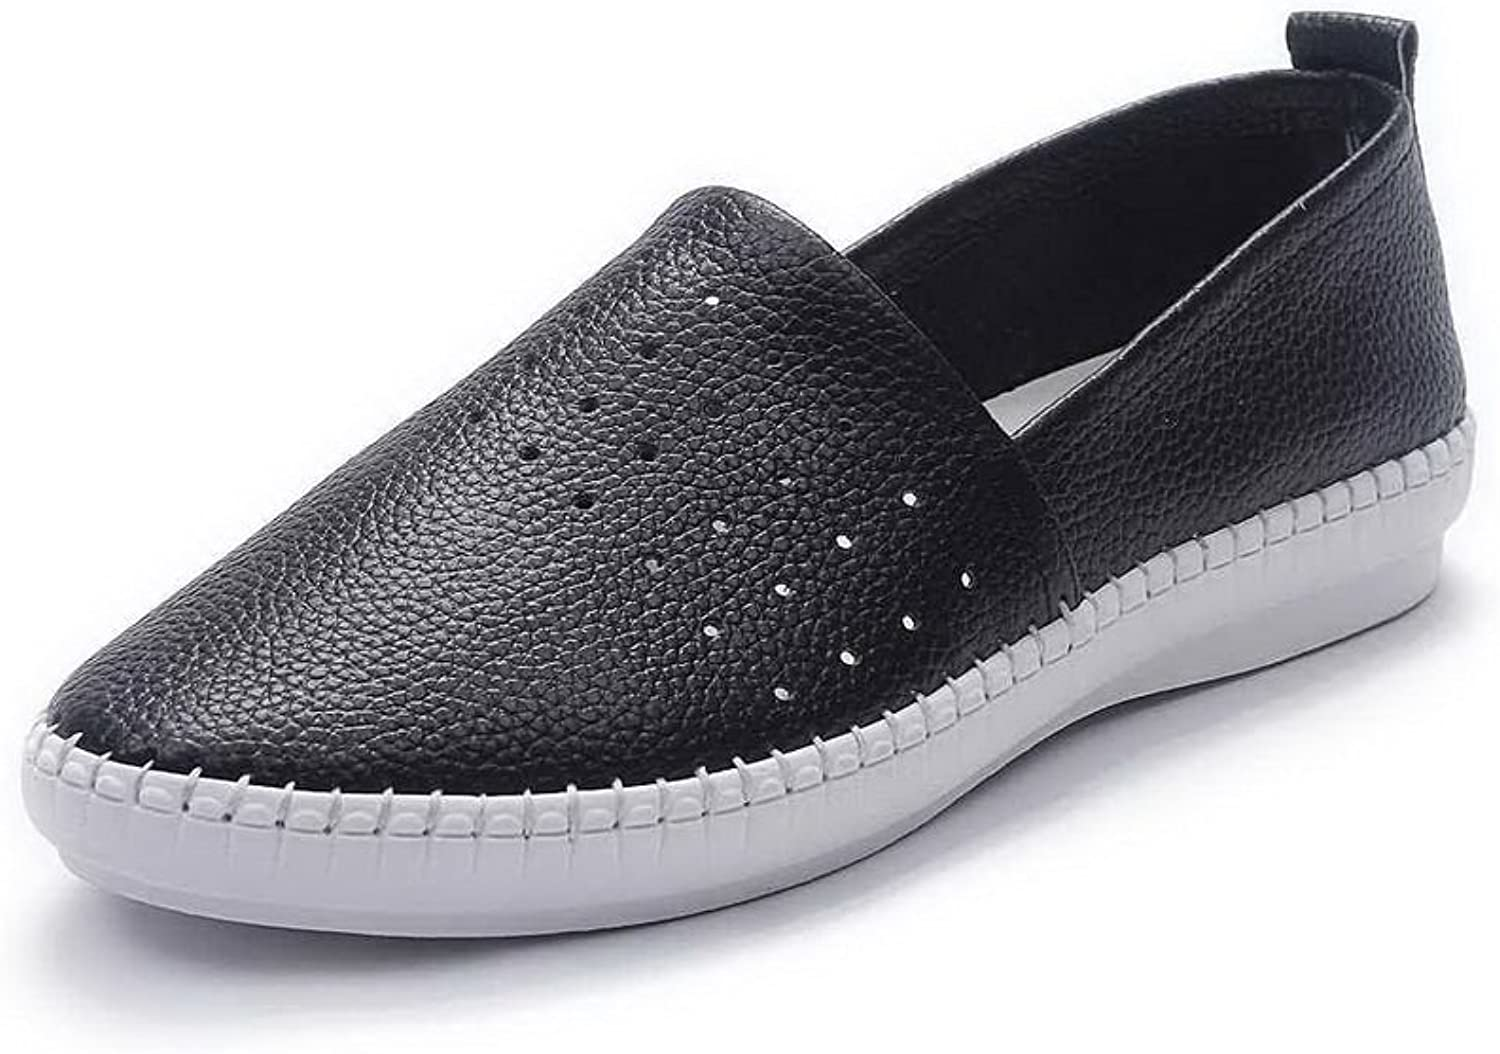 AdeeSu Womens Retro Round-Toe Hollow Out Leather Loafers shoes SDC03715